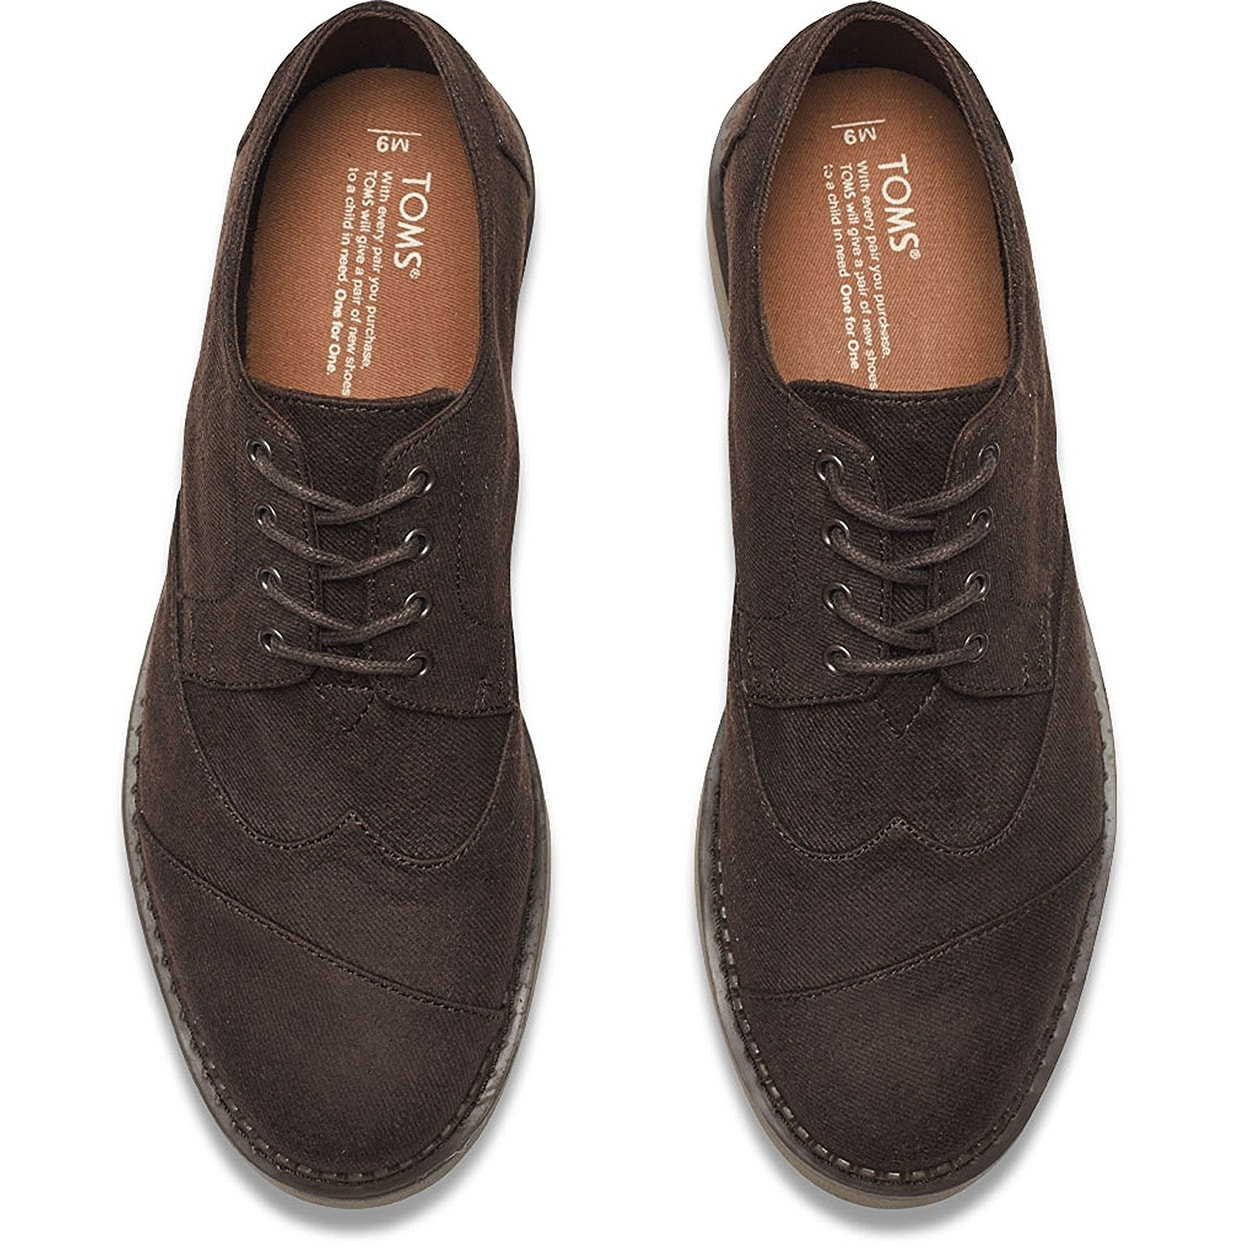 939dfb2af9c Shop Toms Aviator Twill Men s Brogues 10007000 - Free Shipping Today -  Overstock - 14179827